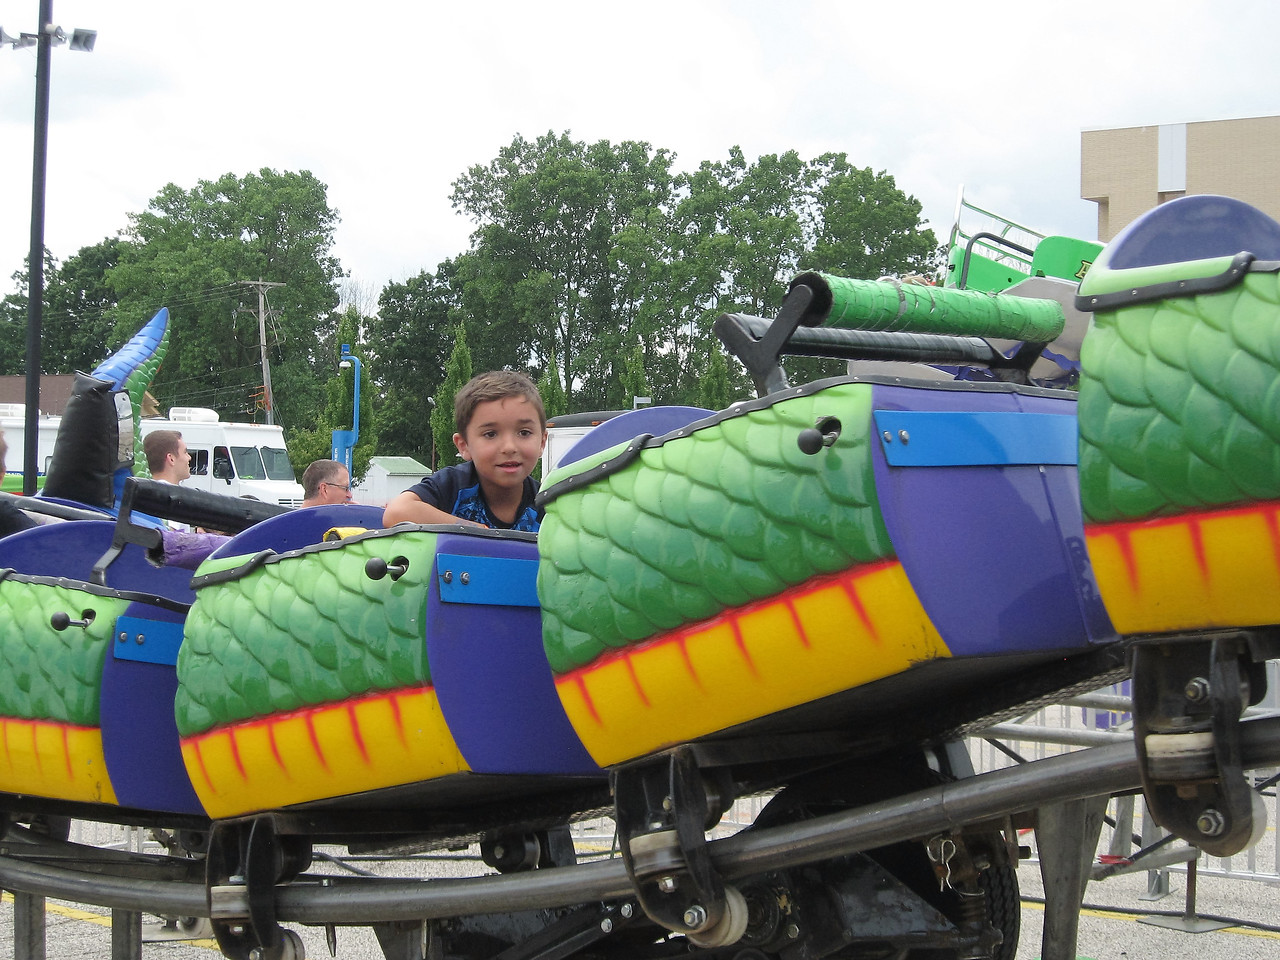 BOB SANDRICK / GAZETTE Danino Toth, 6, of Medina, looks out at his father while riding the Dragon Wagon on Saturday at the 2017 Summer Celebration in Brunswick.